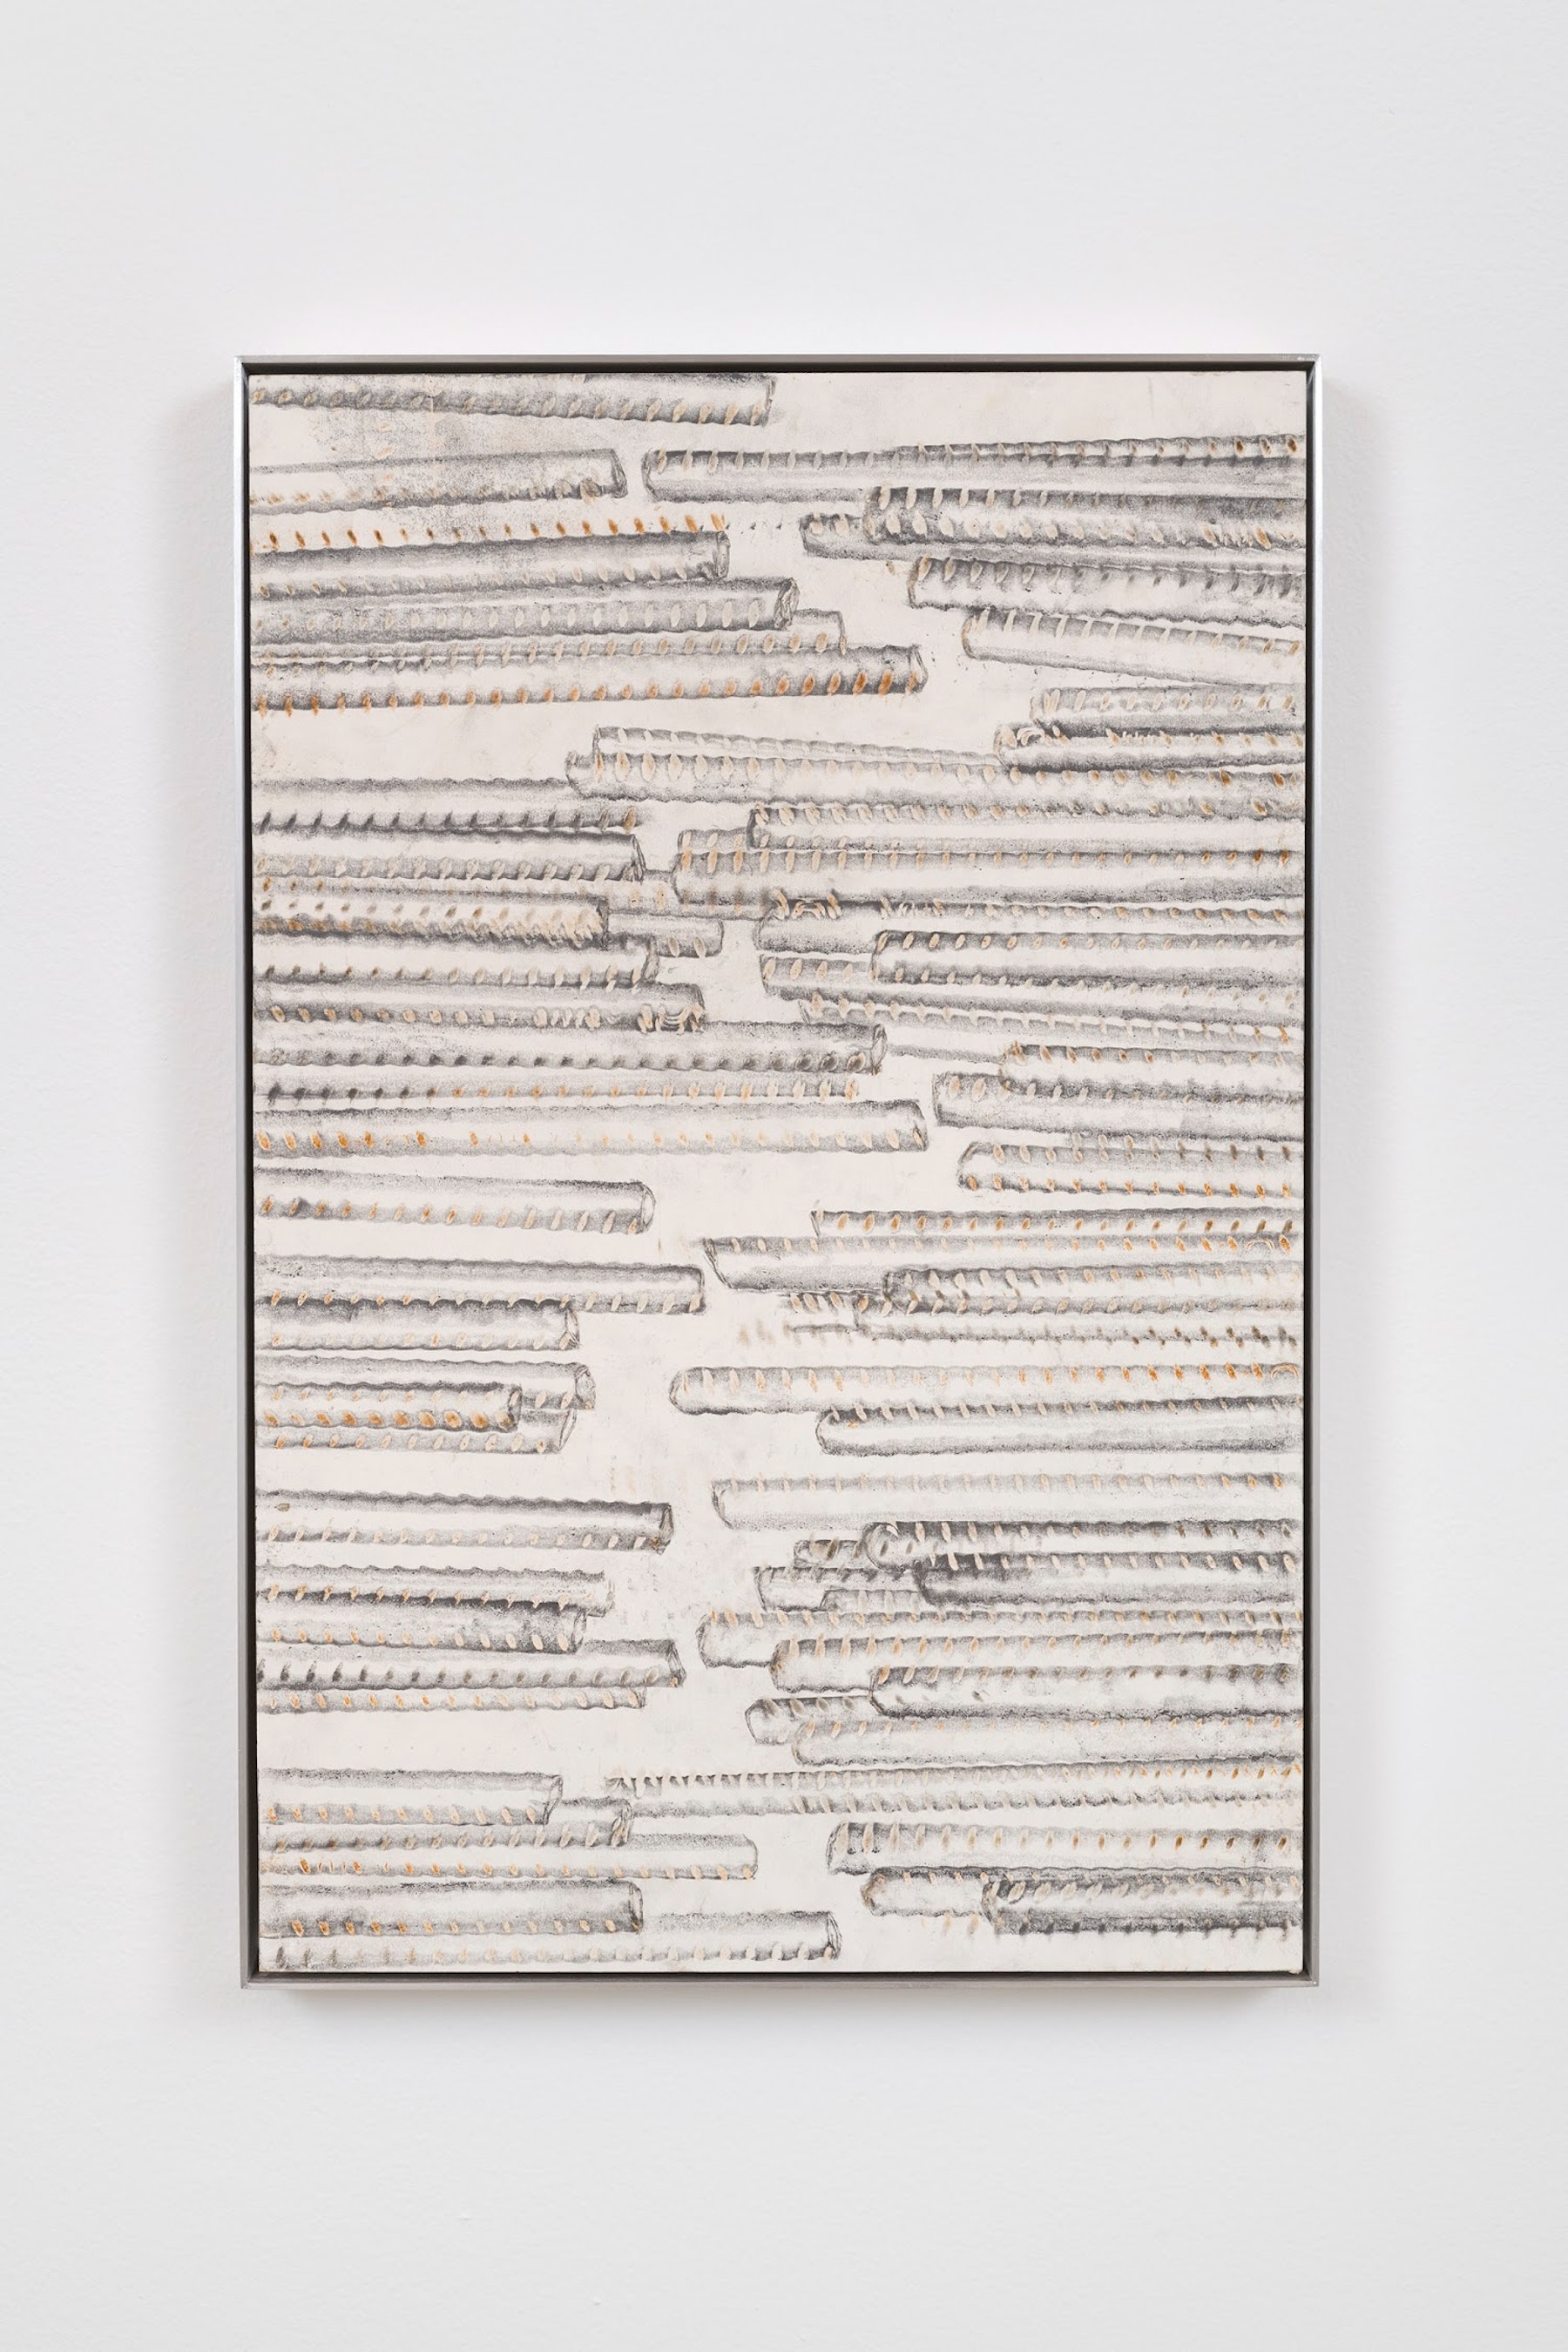 "Ruben Ochoa ""Untitled,"" 2017 Intaglio with rust and graphite on paper 25"" x 16 ¹⁄₂"" x 1 ¹⁄₂"" [HxWxD] (63.5 x 41.91 x 3.81 cm) Inventory #OCH353 Courtesy of the artist and Vielmetter Los Angeles Photo credit: Jeff McLane Signed and dated in ink on recto"